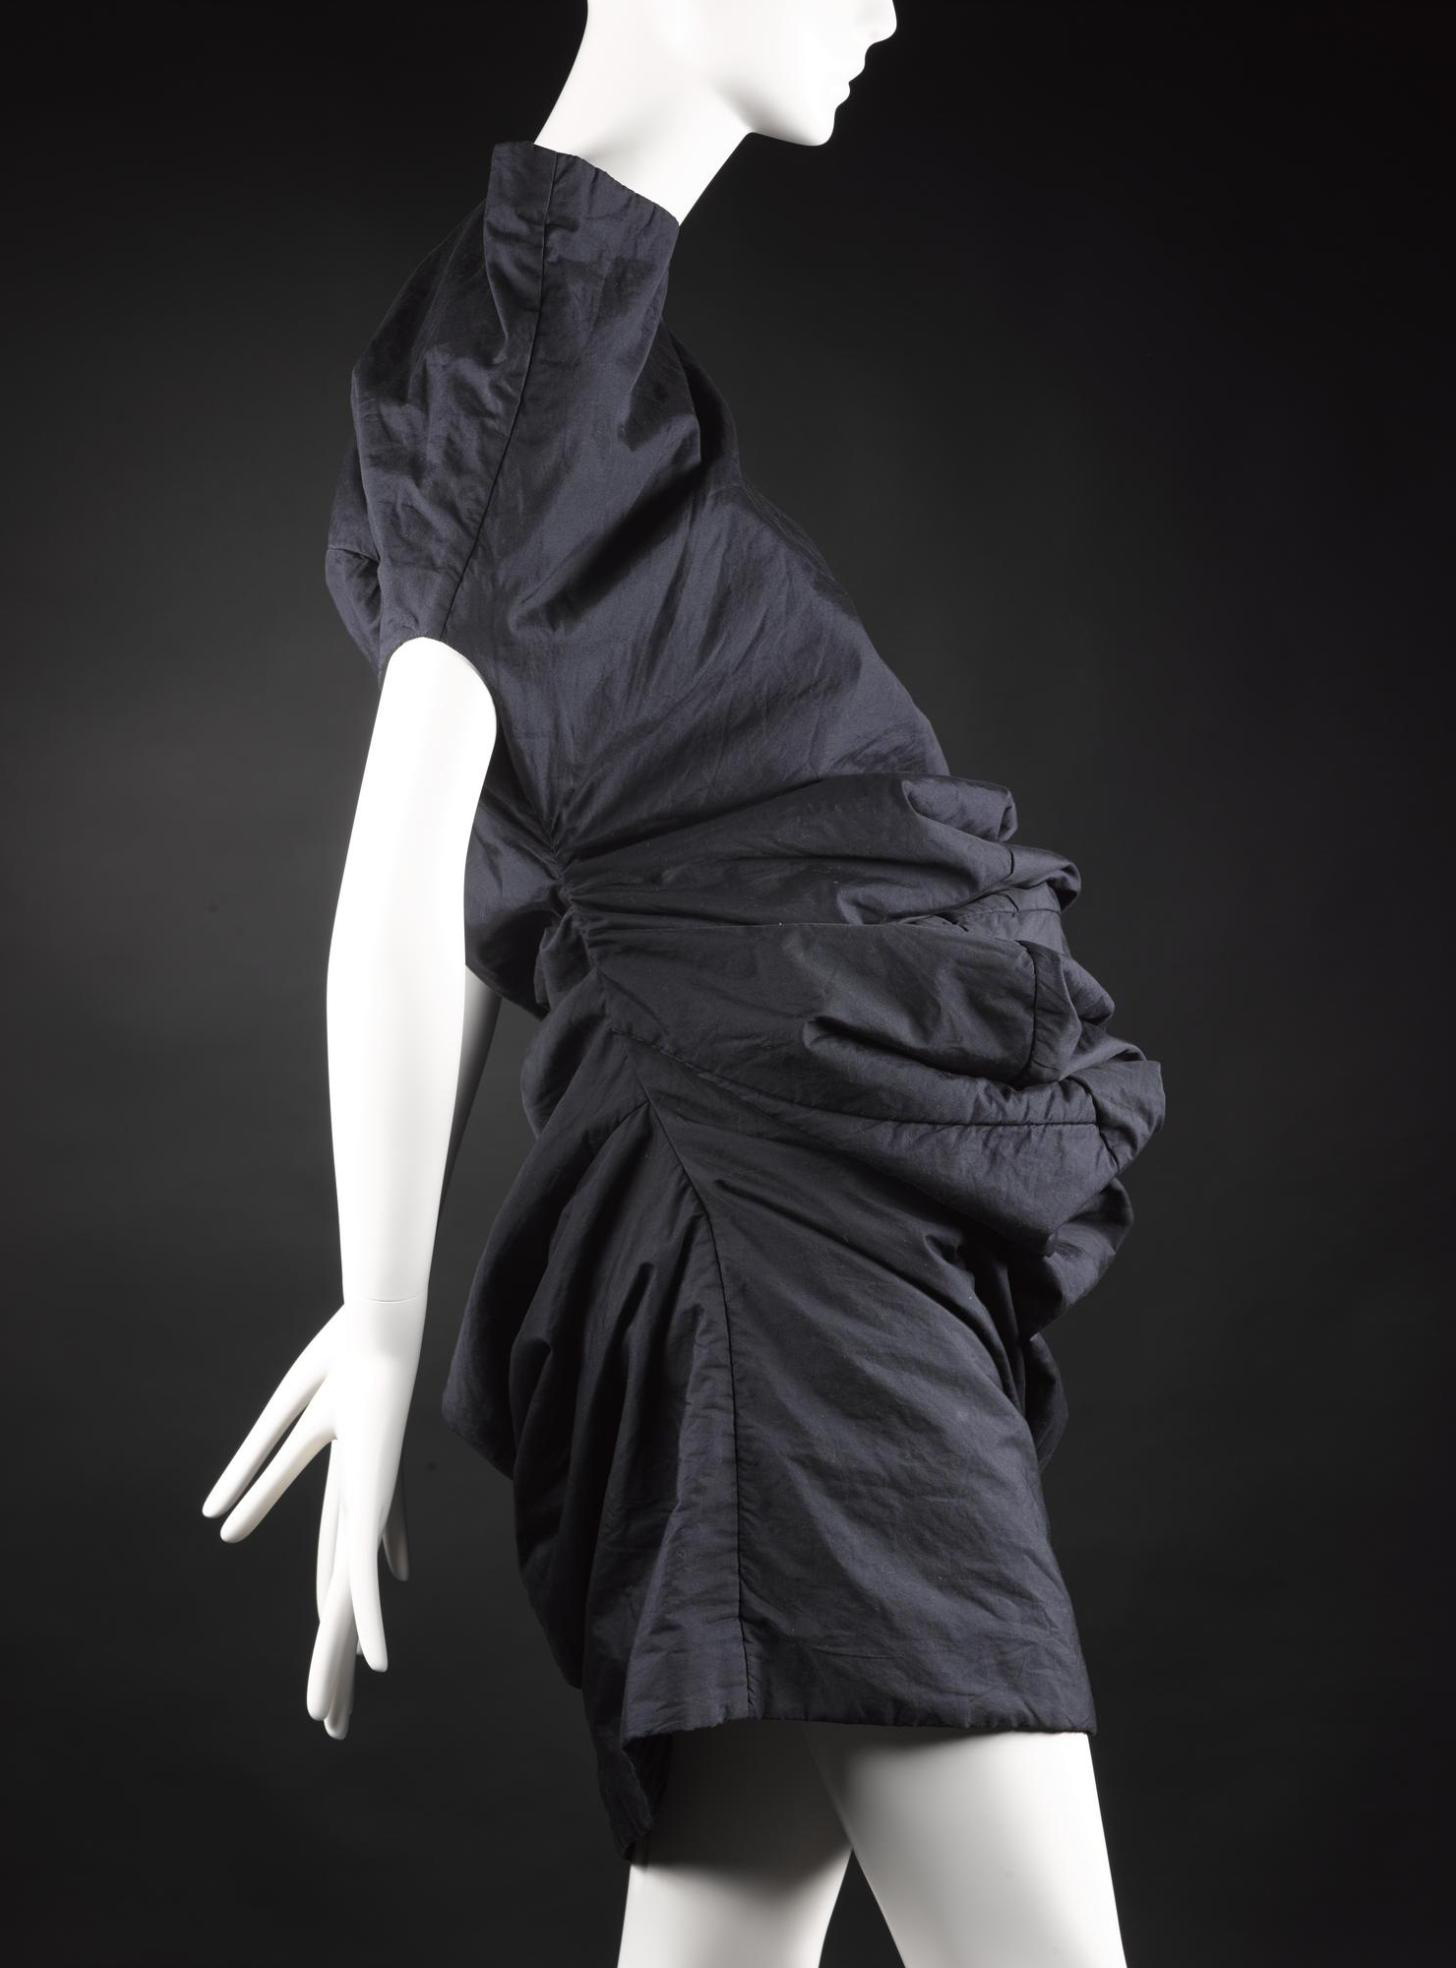 Dress from 'Body Meets Dress' or 'Bump' collection, Rei Kawakubo for Comme des Garçons, Spring/Summer 1997. ©  Rei Kawakubo / Comme des Garcons